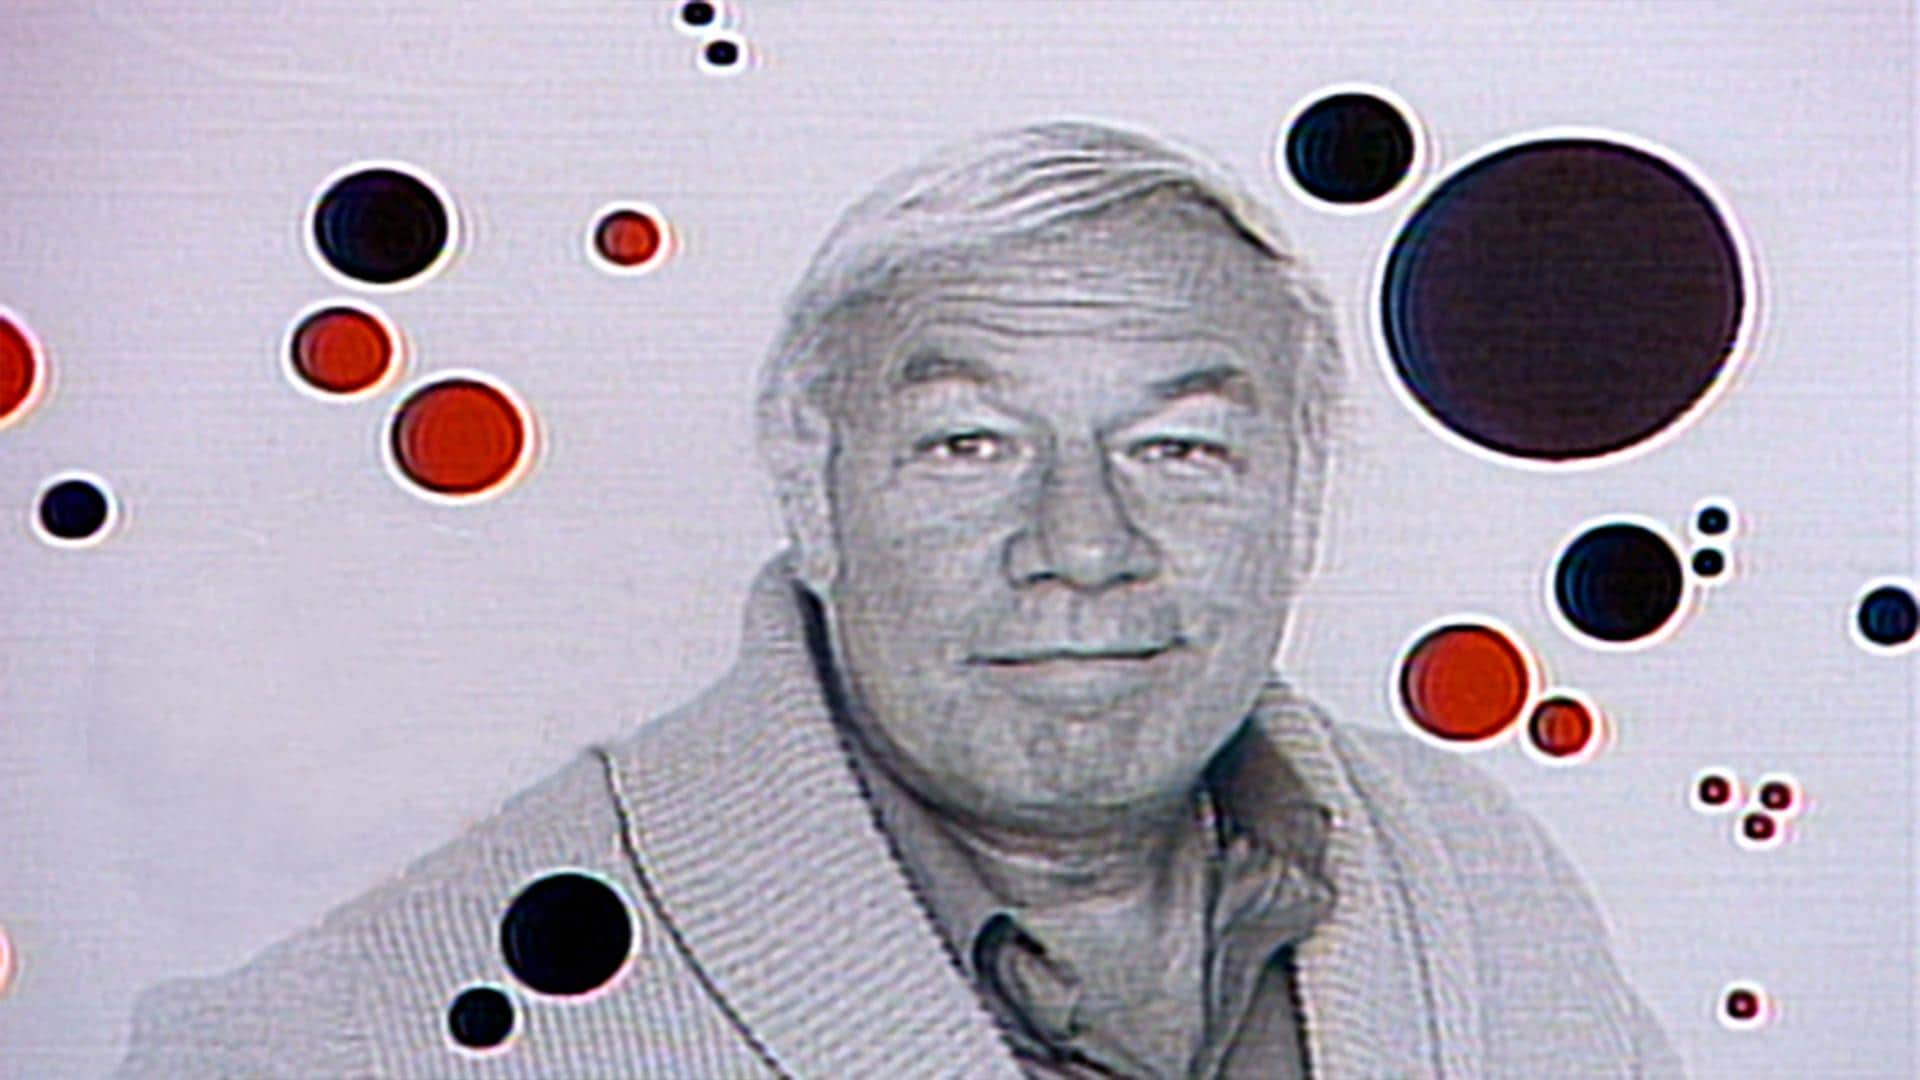 George Kennedy: October 17, 1981